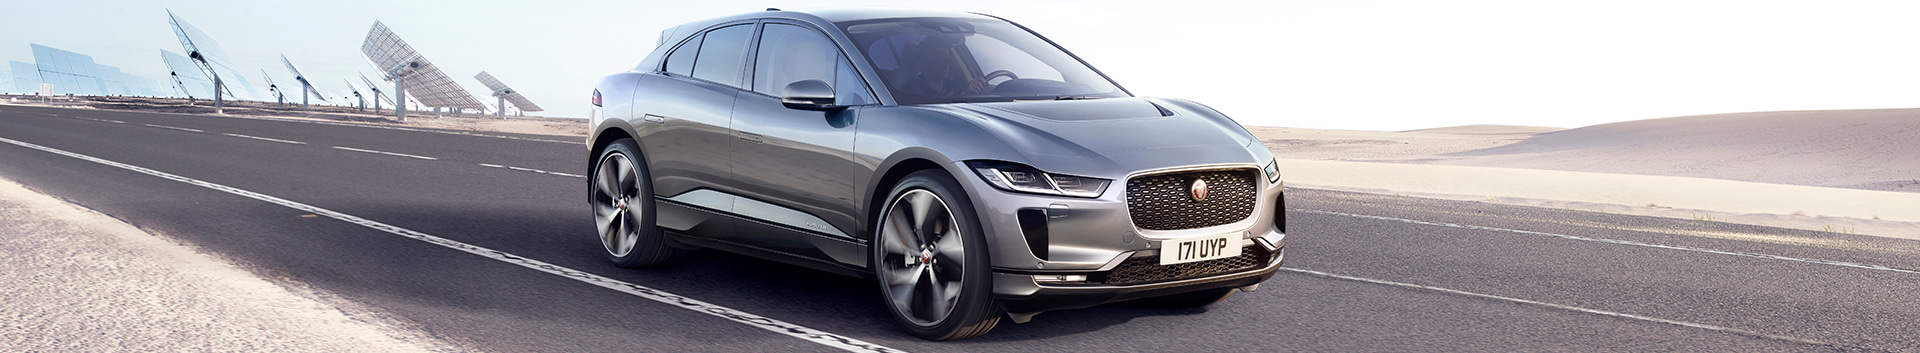 Front 3/4 exterior view of the Jaguar 2021 I-Pace driving through the desert highway